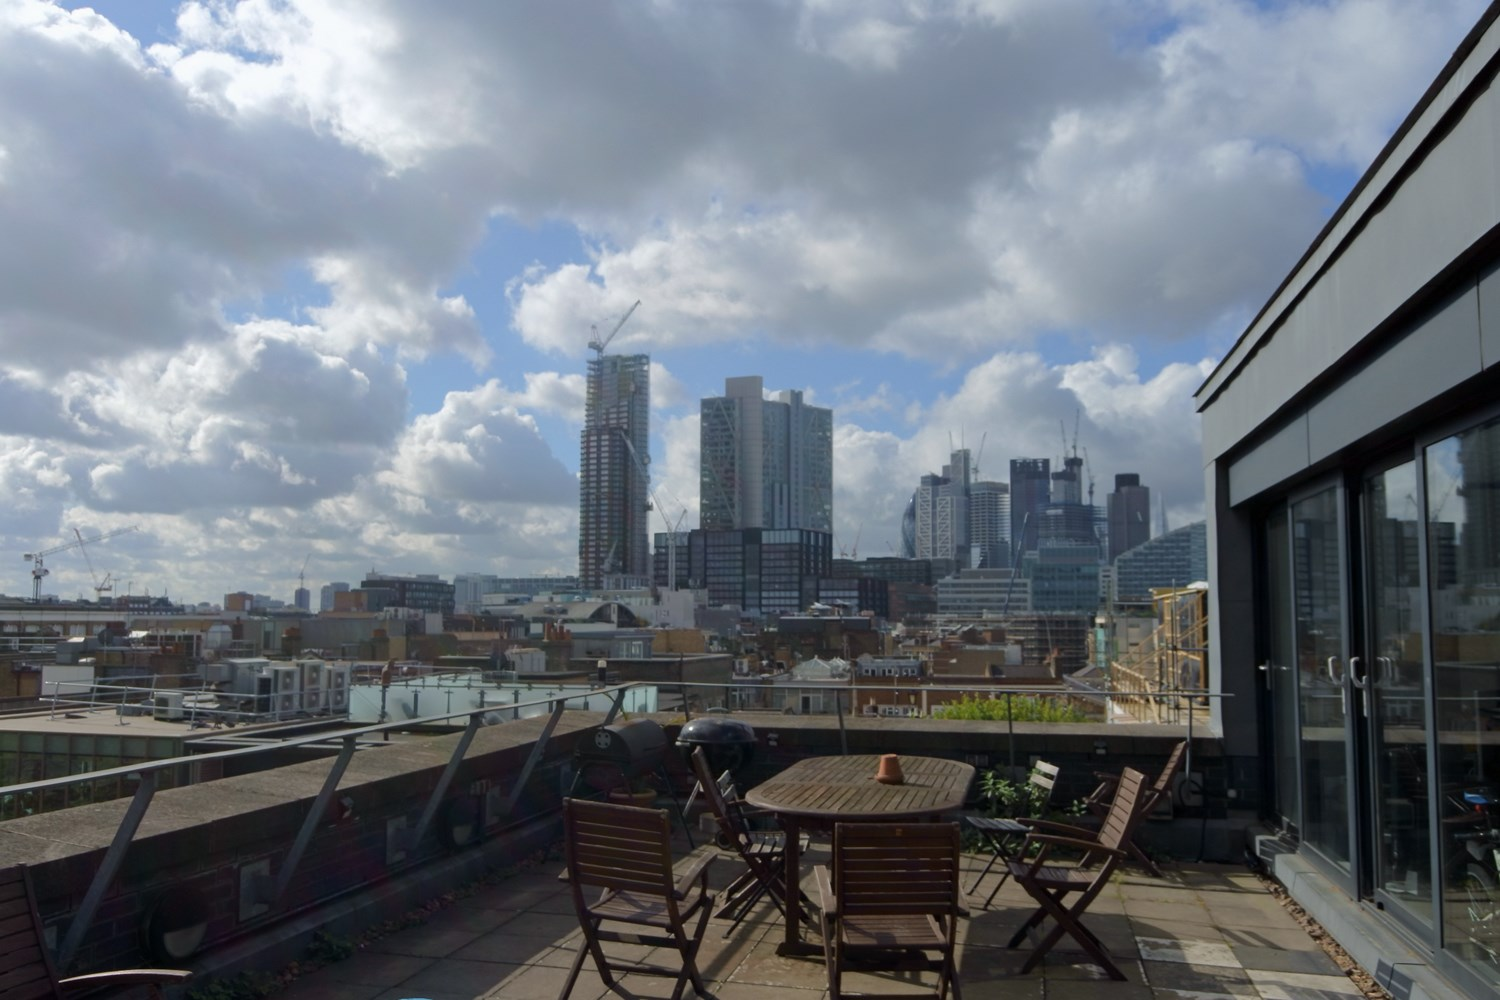 Lux Building 2 4 Hoxton Square Unit 12 N1 6NU Shoreditch Office Roofterrace2